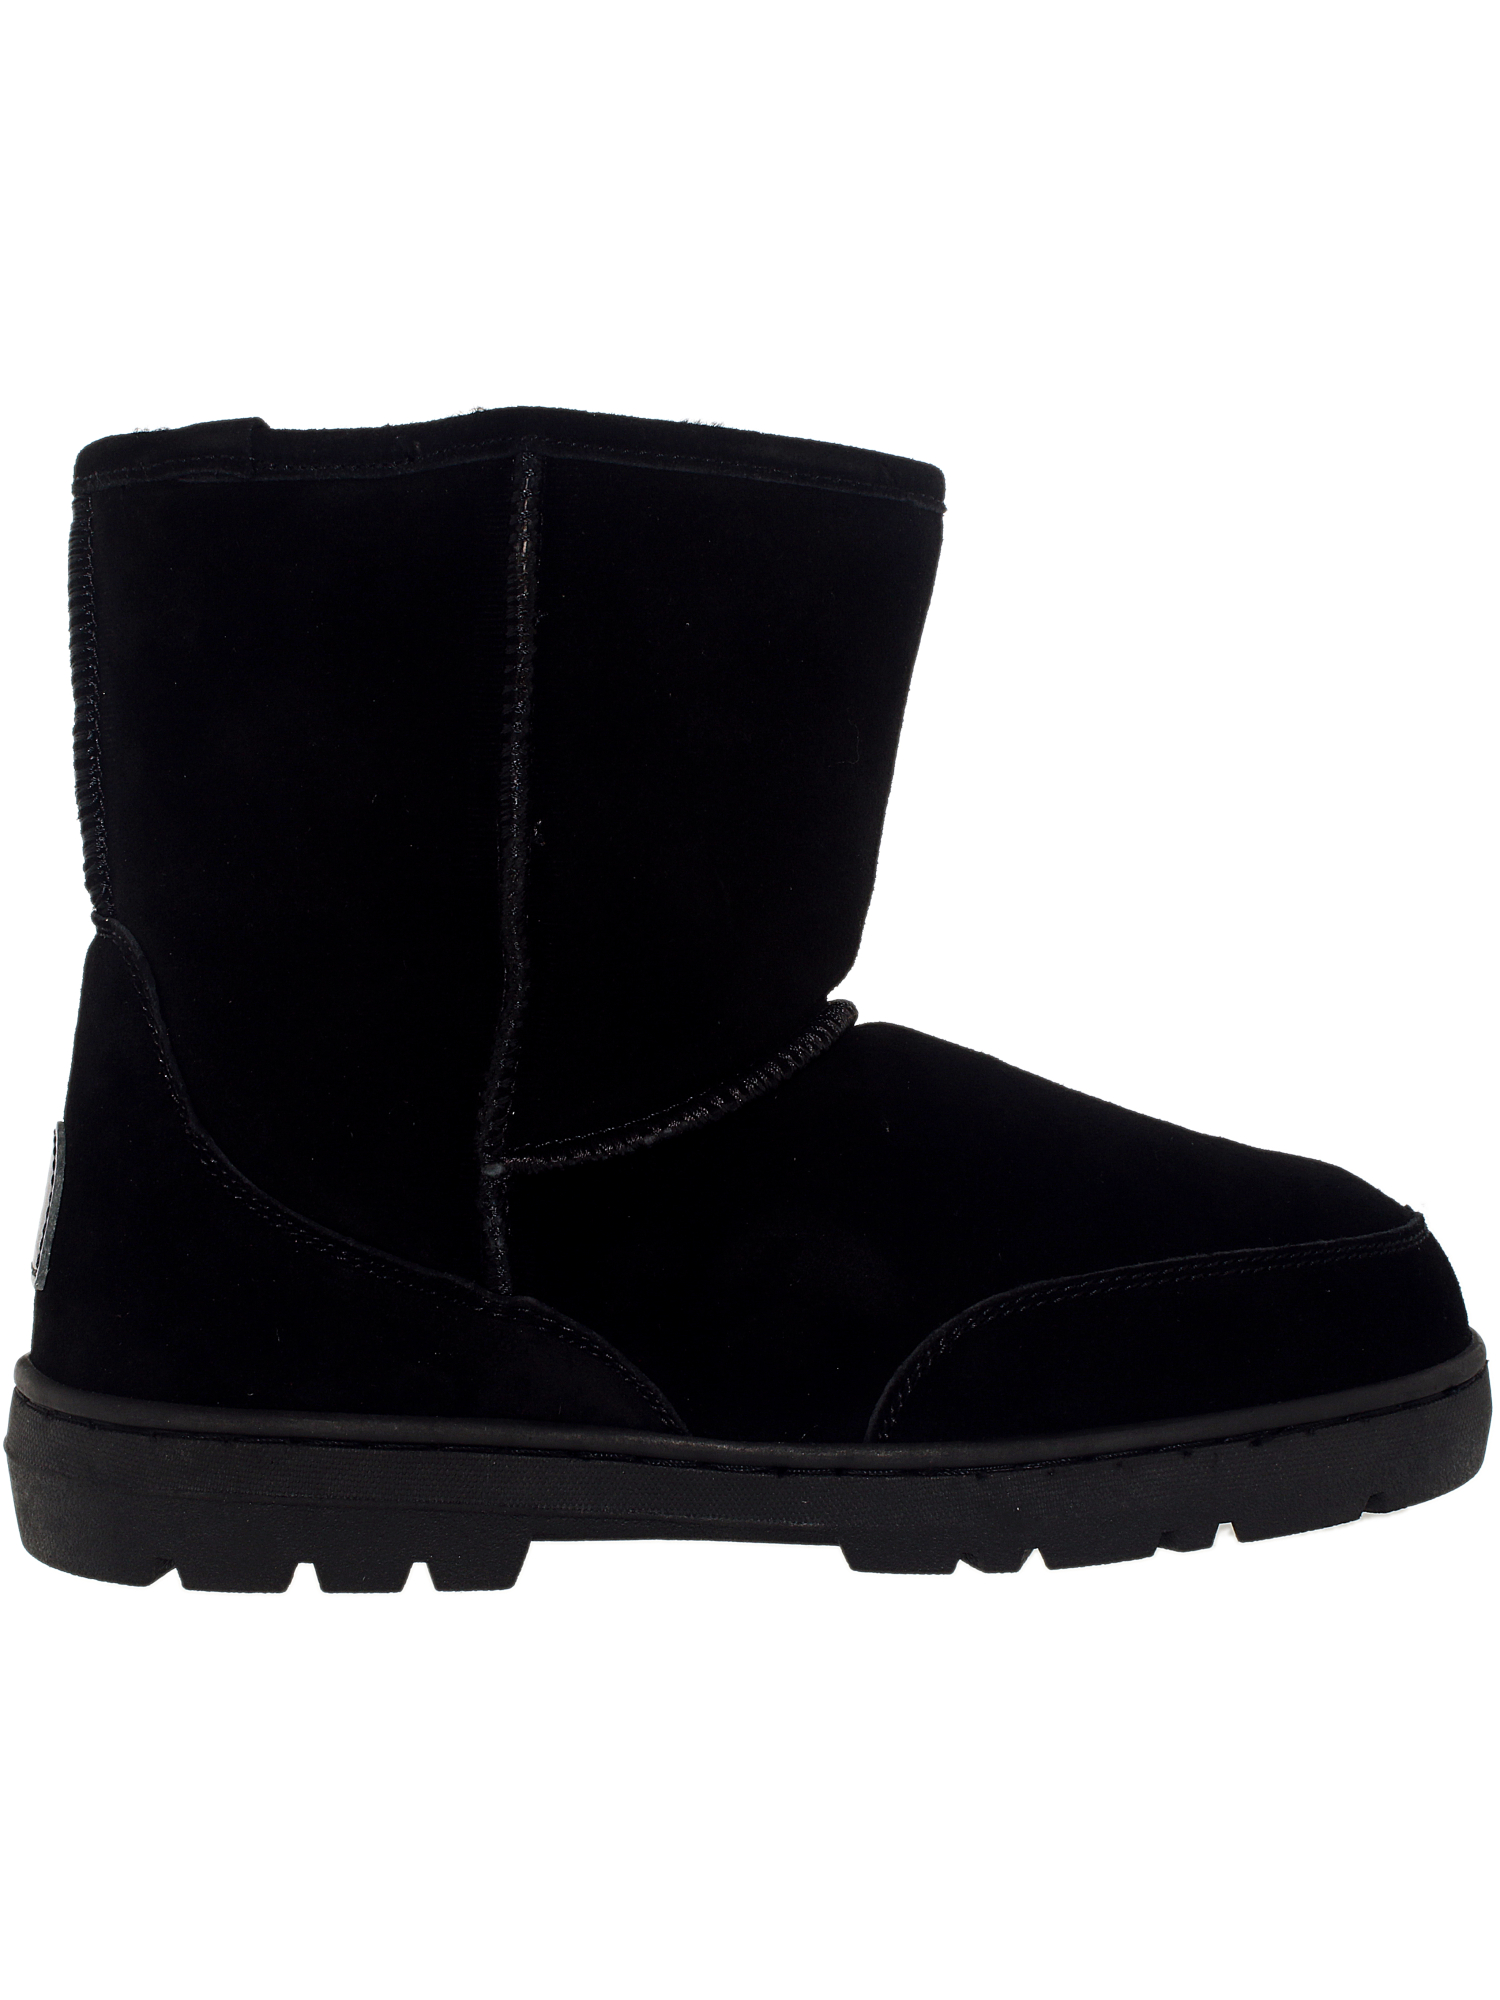 Bearpaw-Patriot-Cold-Weather-Boot thumbnail 5